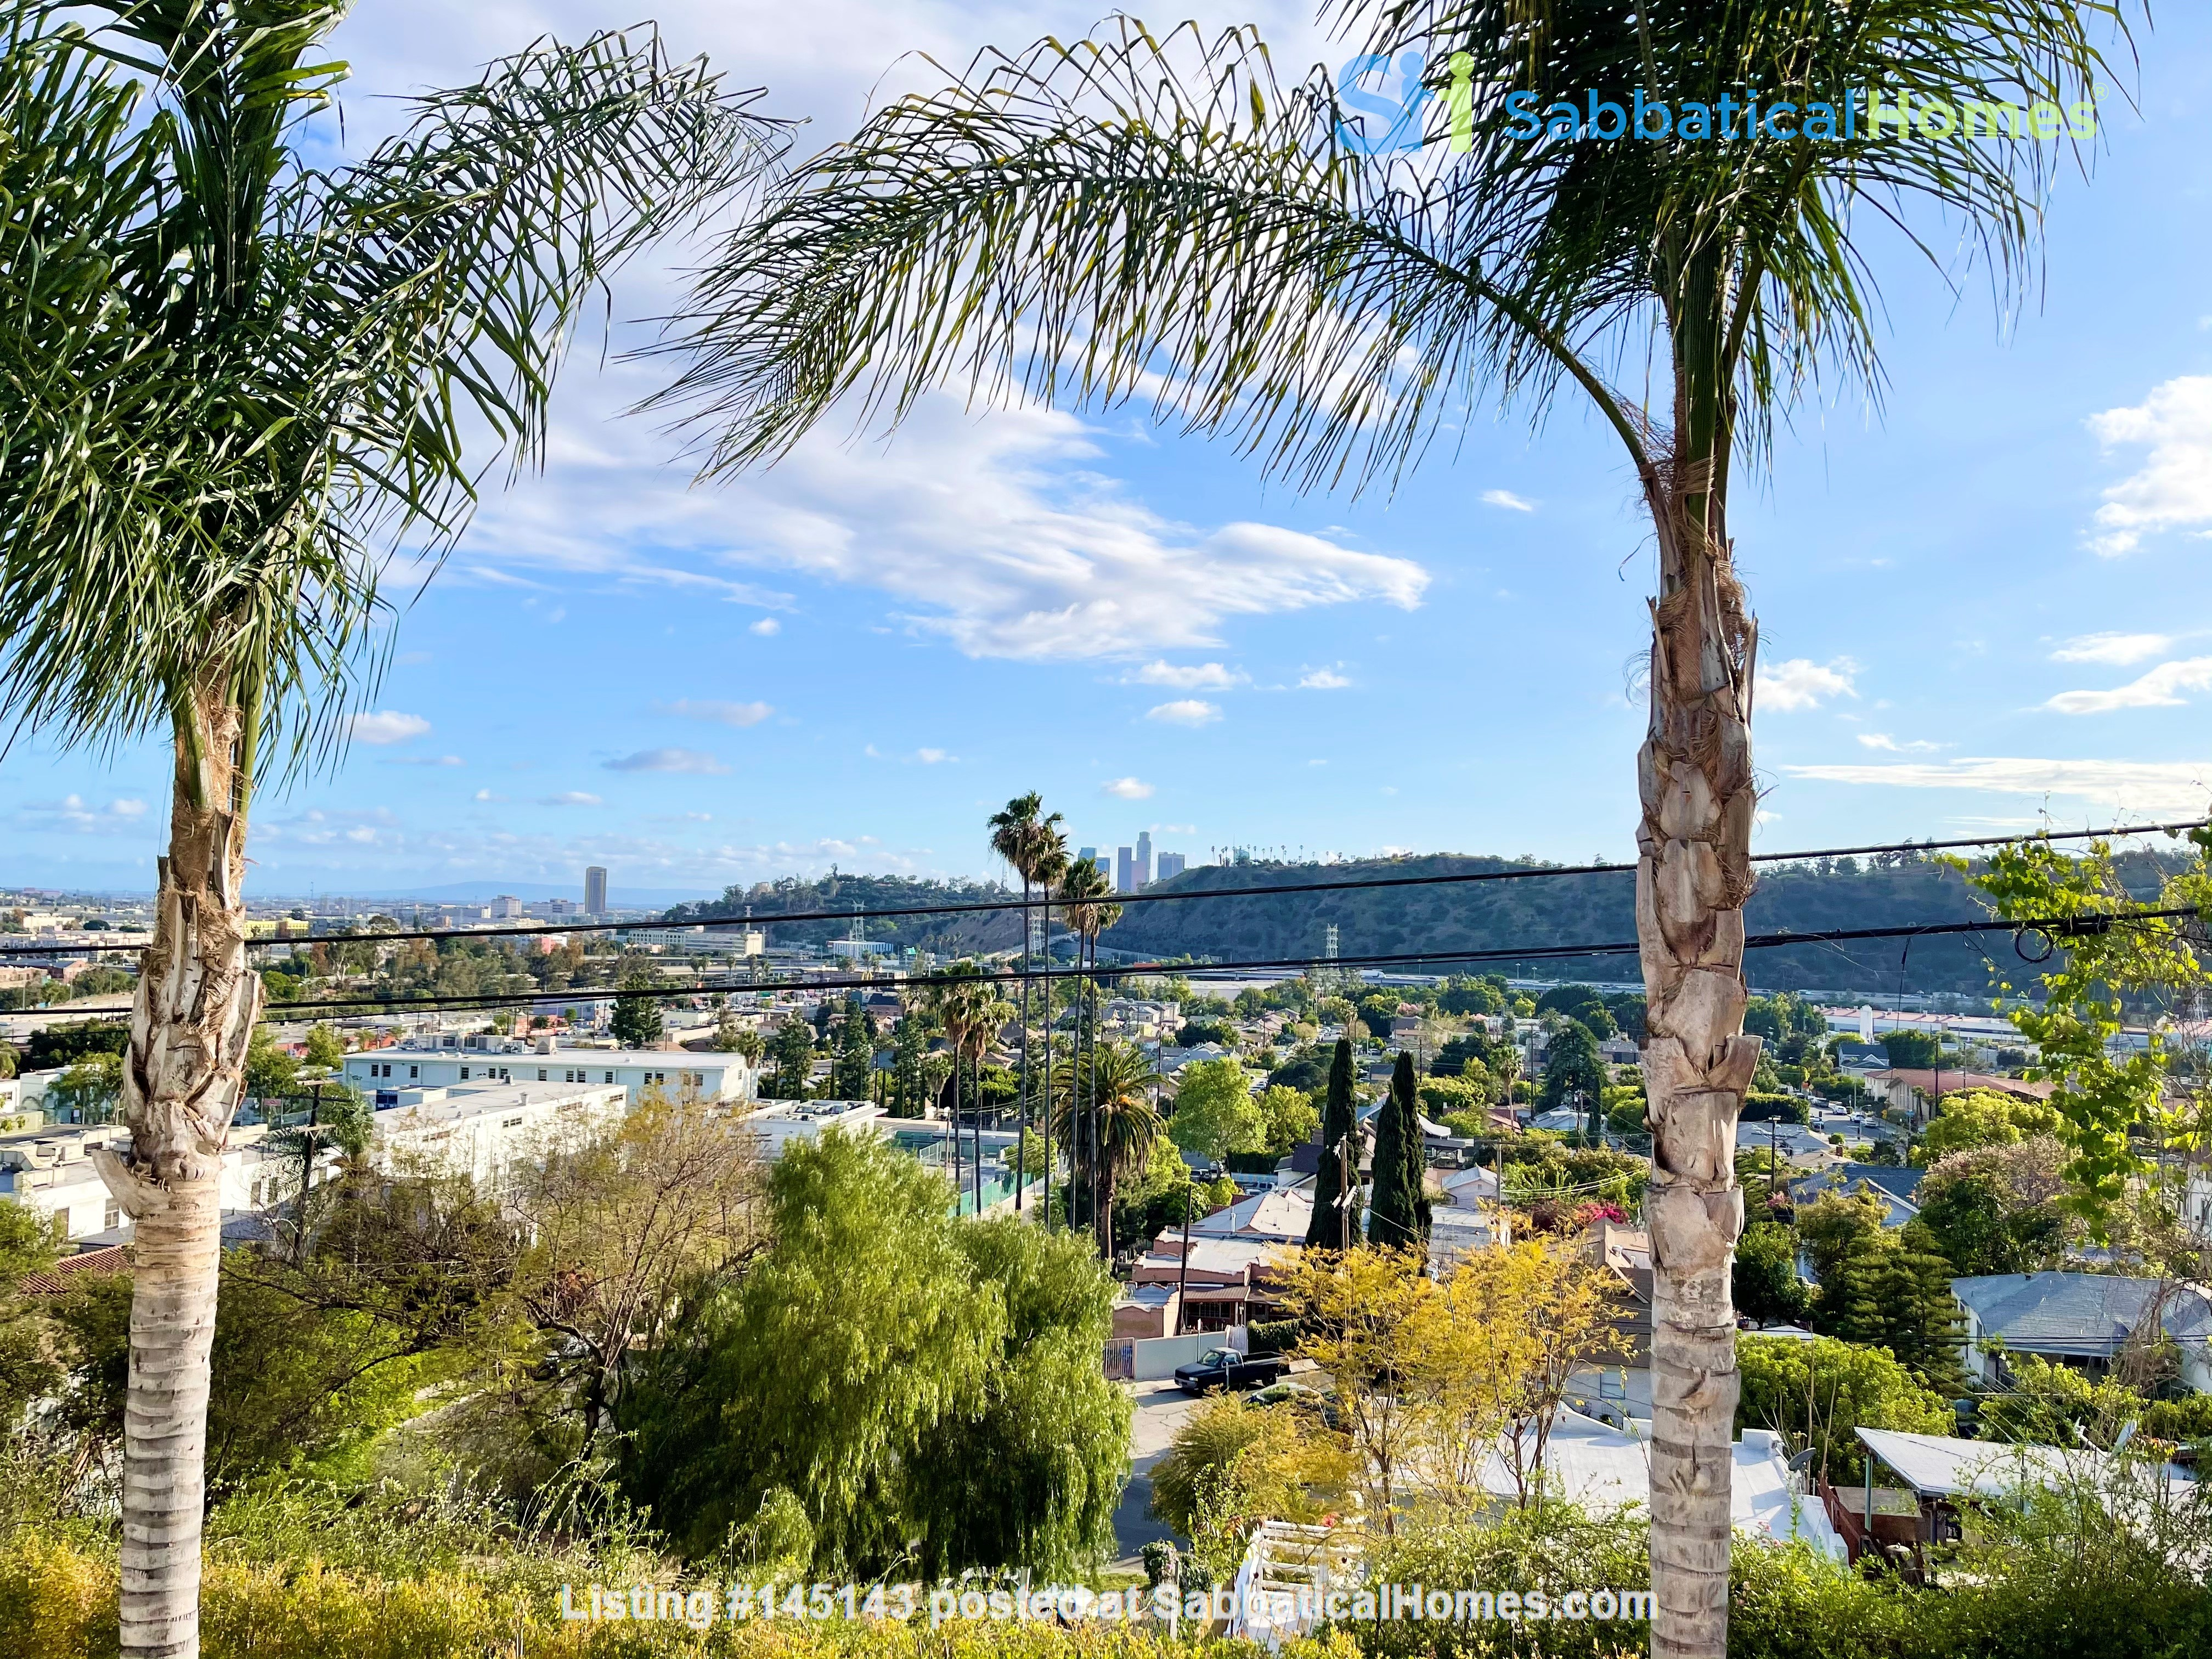 NEW Studio with Stunning L.A. Views! Home Rental in Los Angeles, California, United States 0